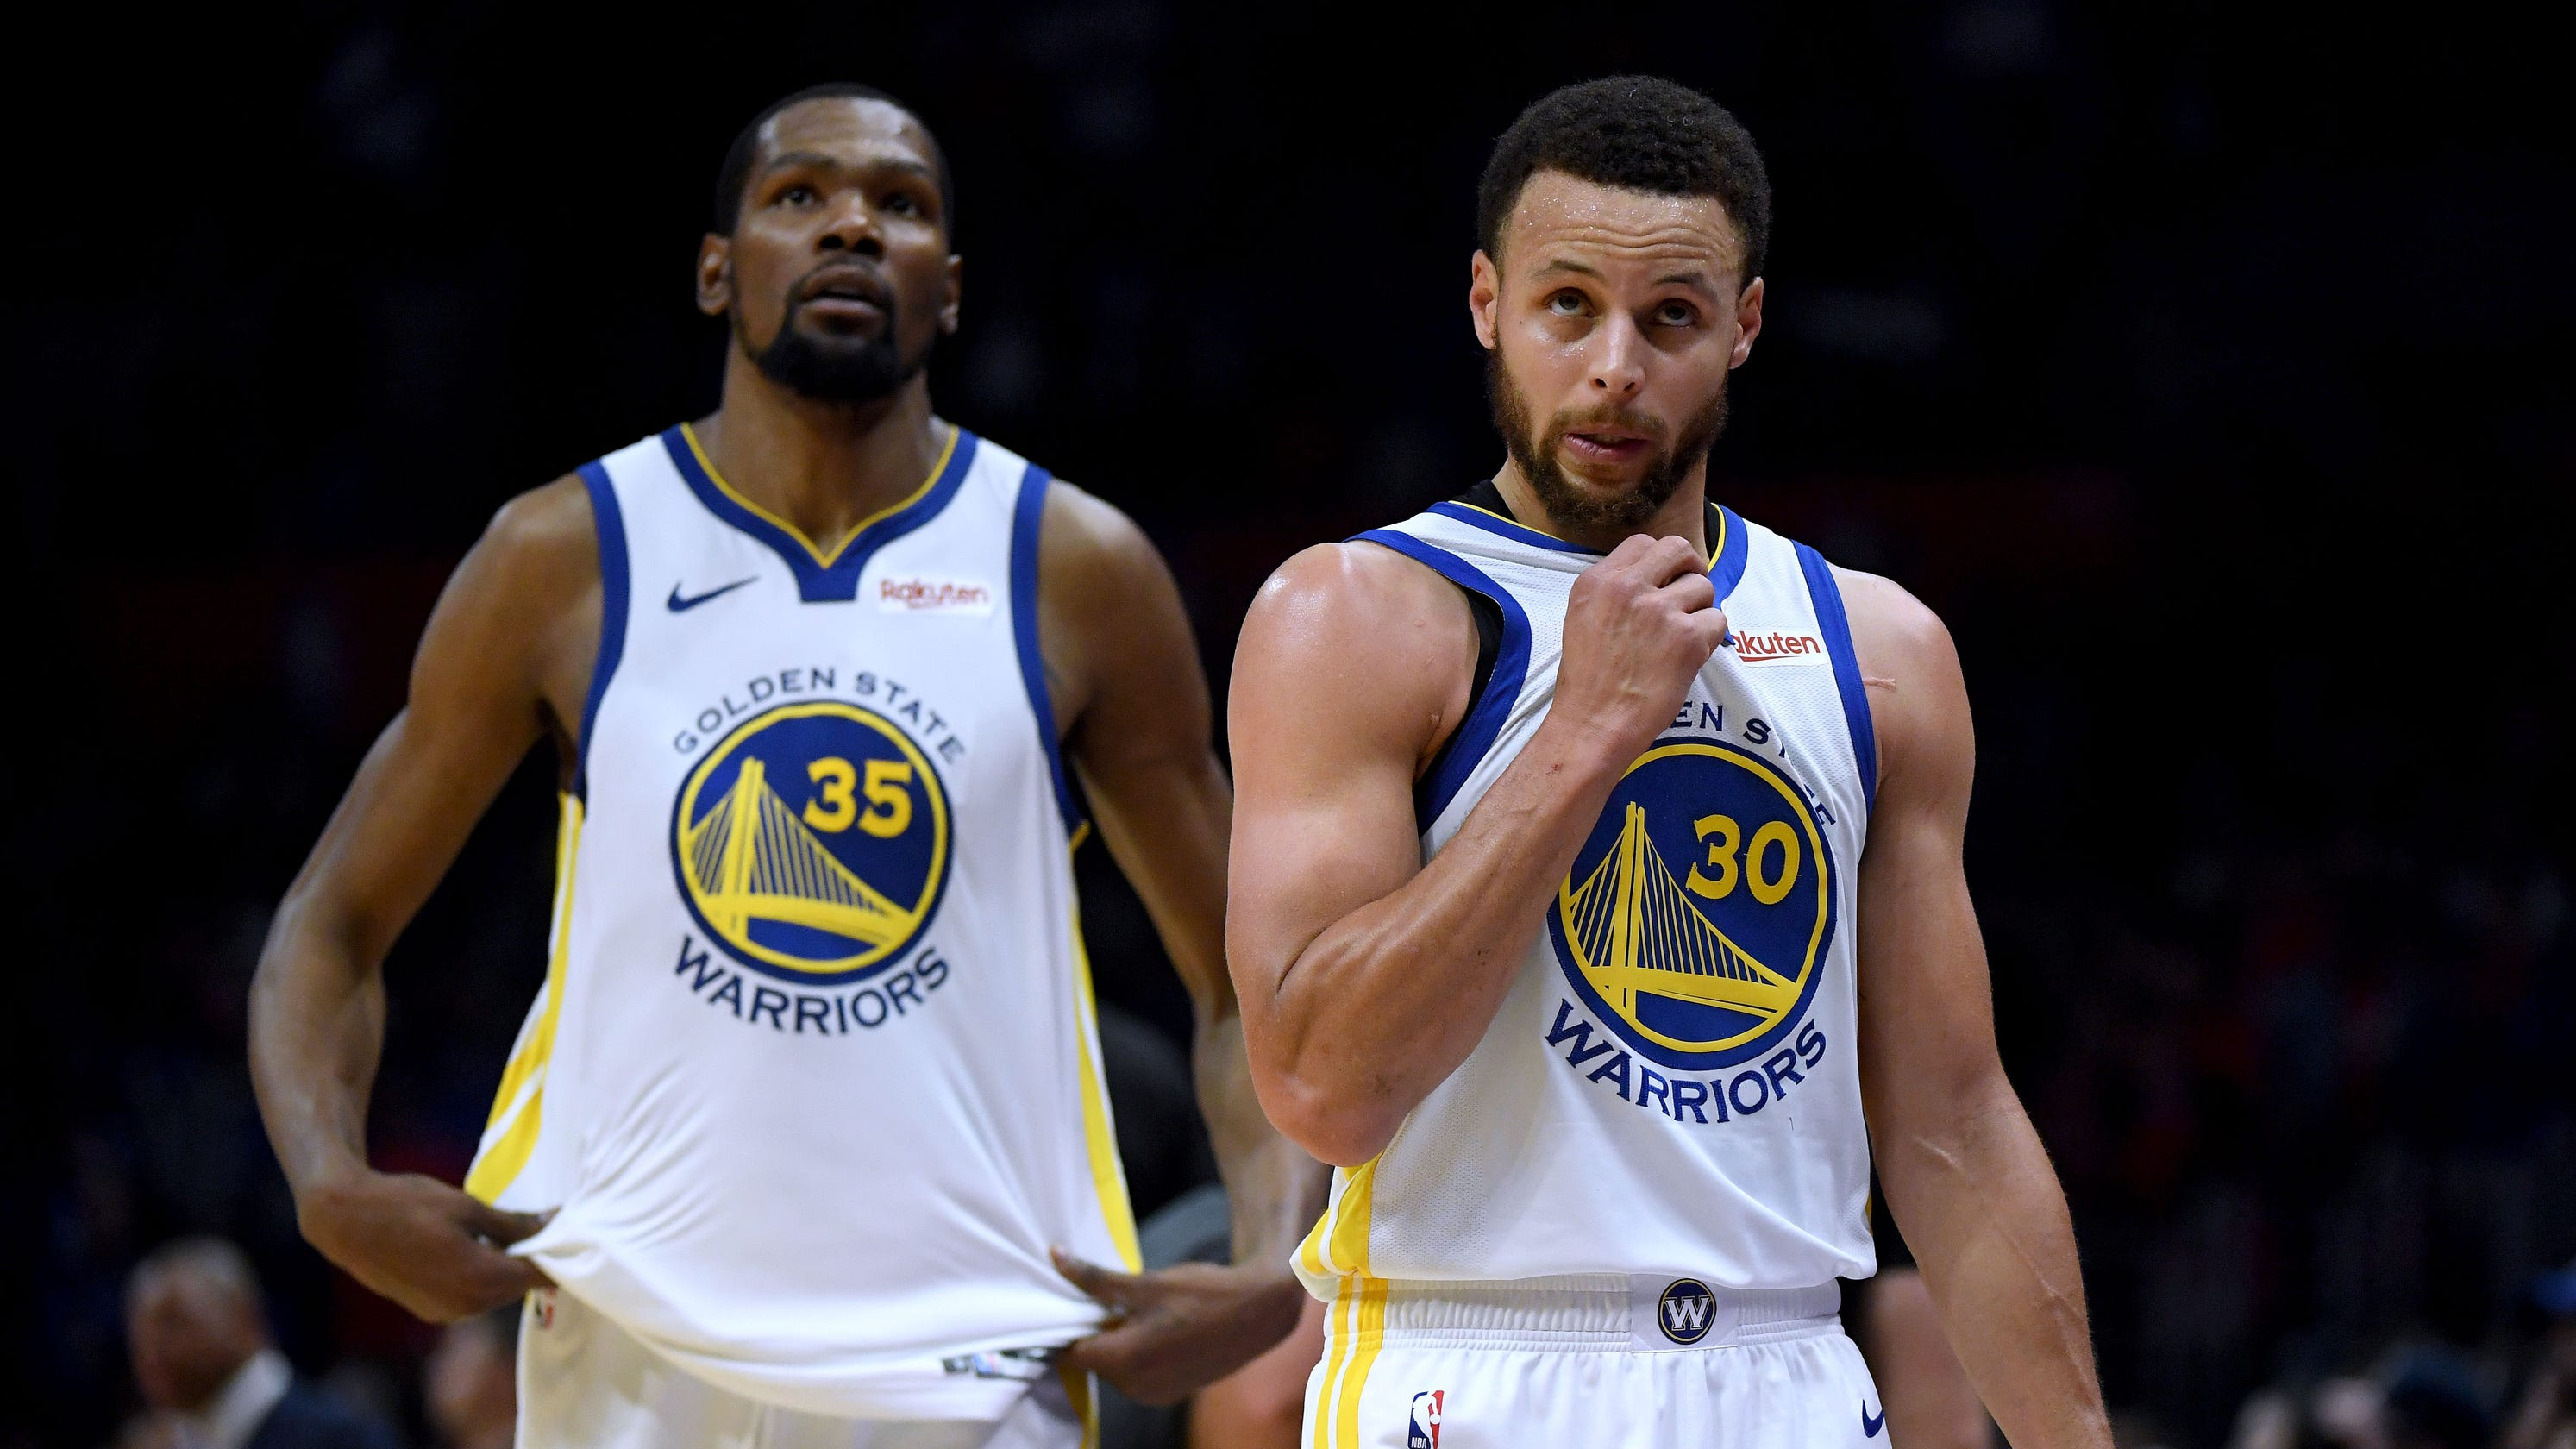 Nba Playoff Predictions Is The Warriors Run Over: NBA Playoff Predictions: Is This The End Of The Road For